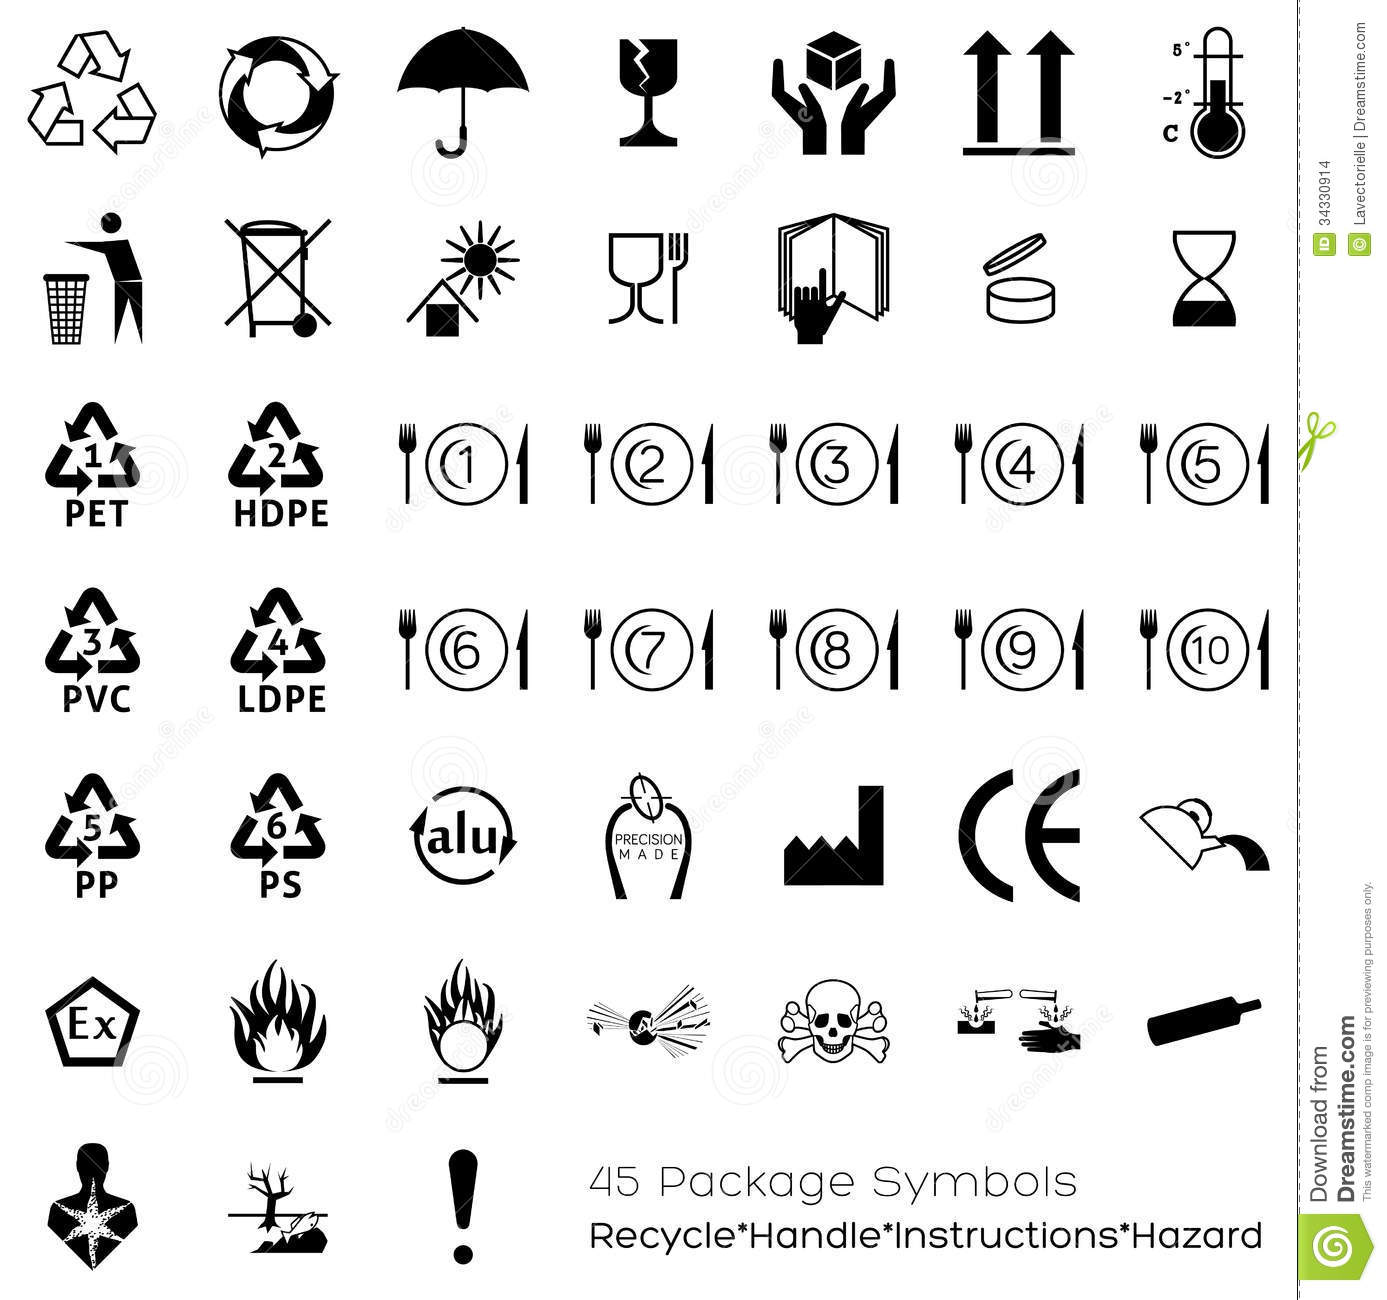 Food packaging symbols gallery symbol and sign ideas collection of 45 packaging symbols stock vector illustration of collection of 45 packaging symbols buycottarizona gallery buycottarizona Choice Image